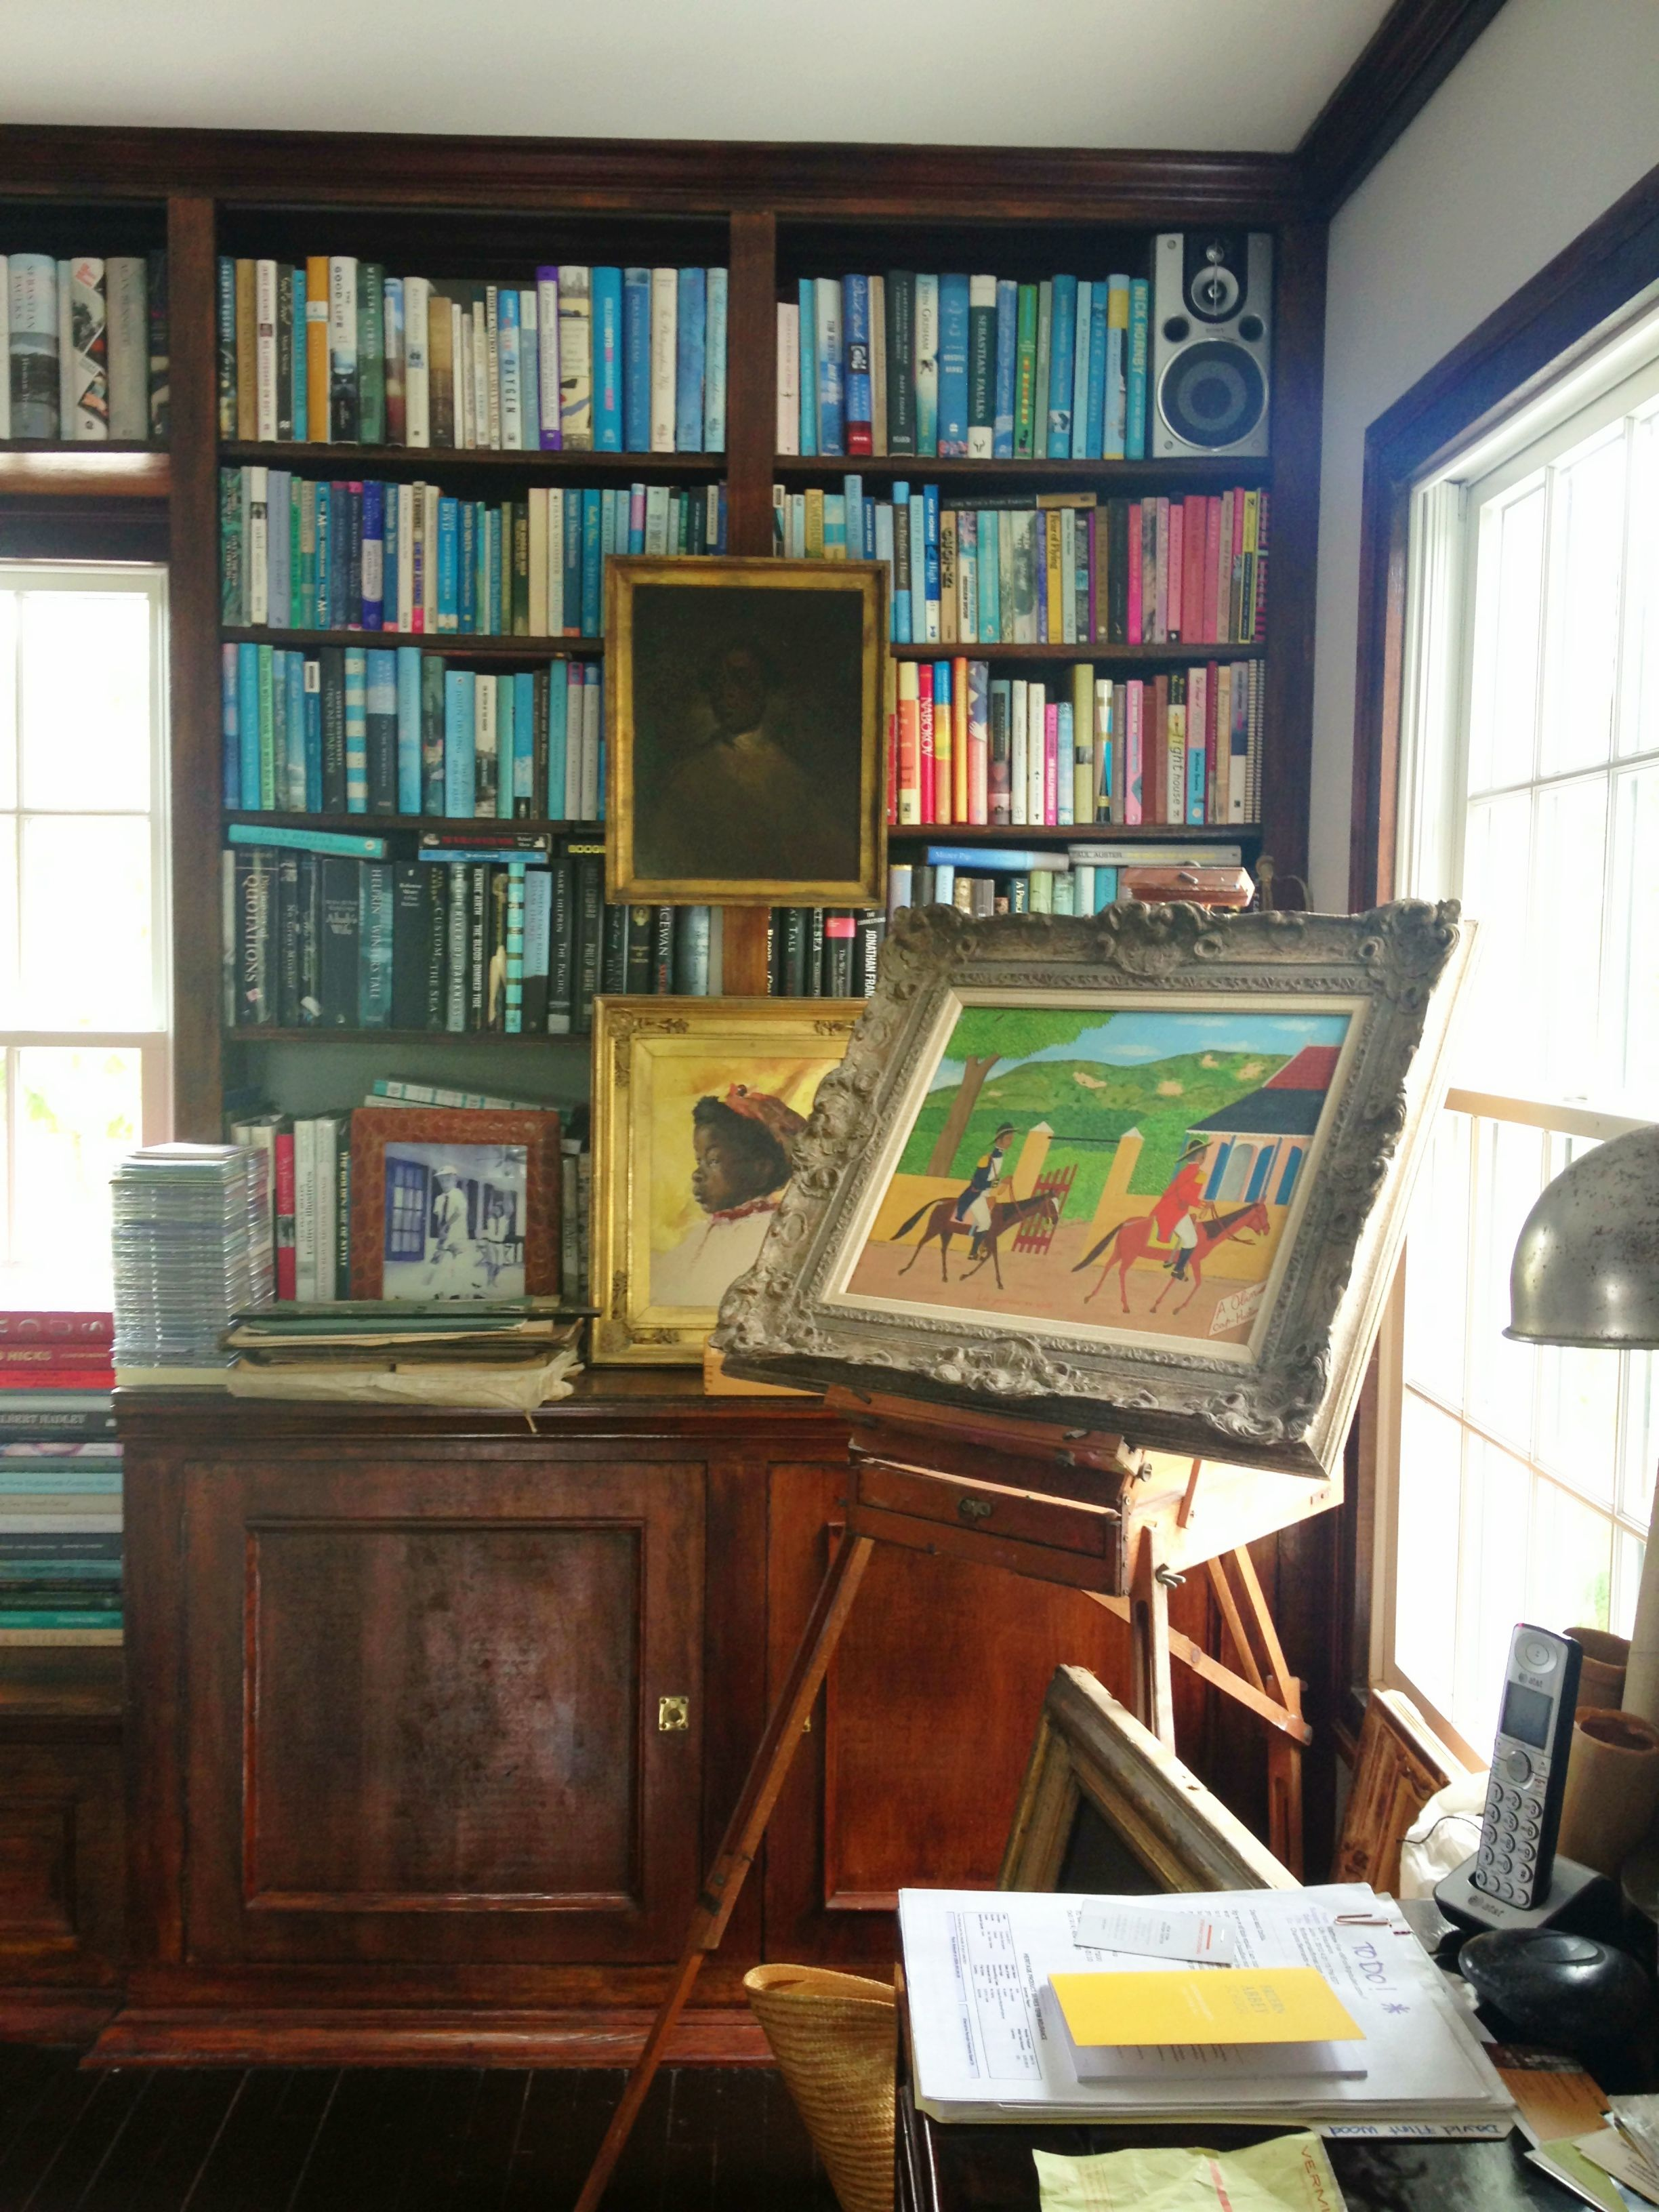 Private Library Study Rooms: Opposite To India's Office Is Her Husband David's Office